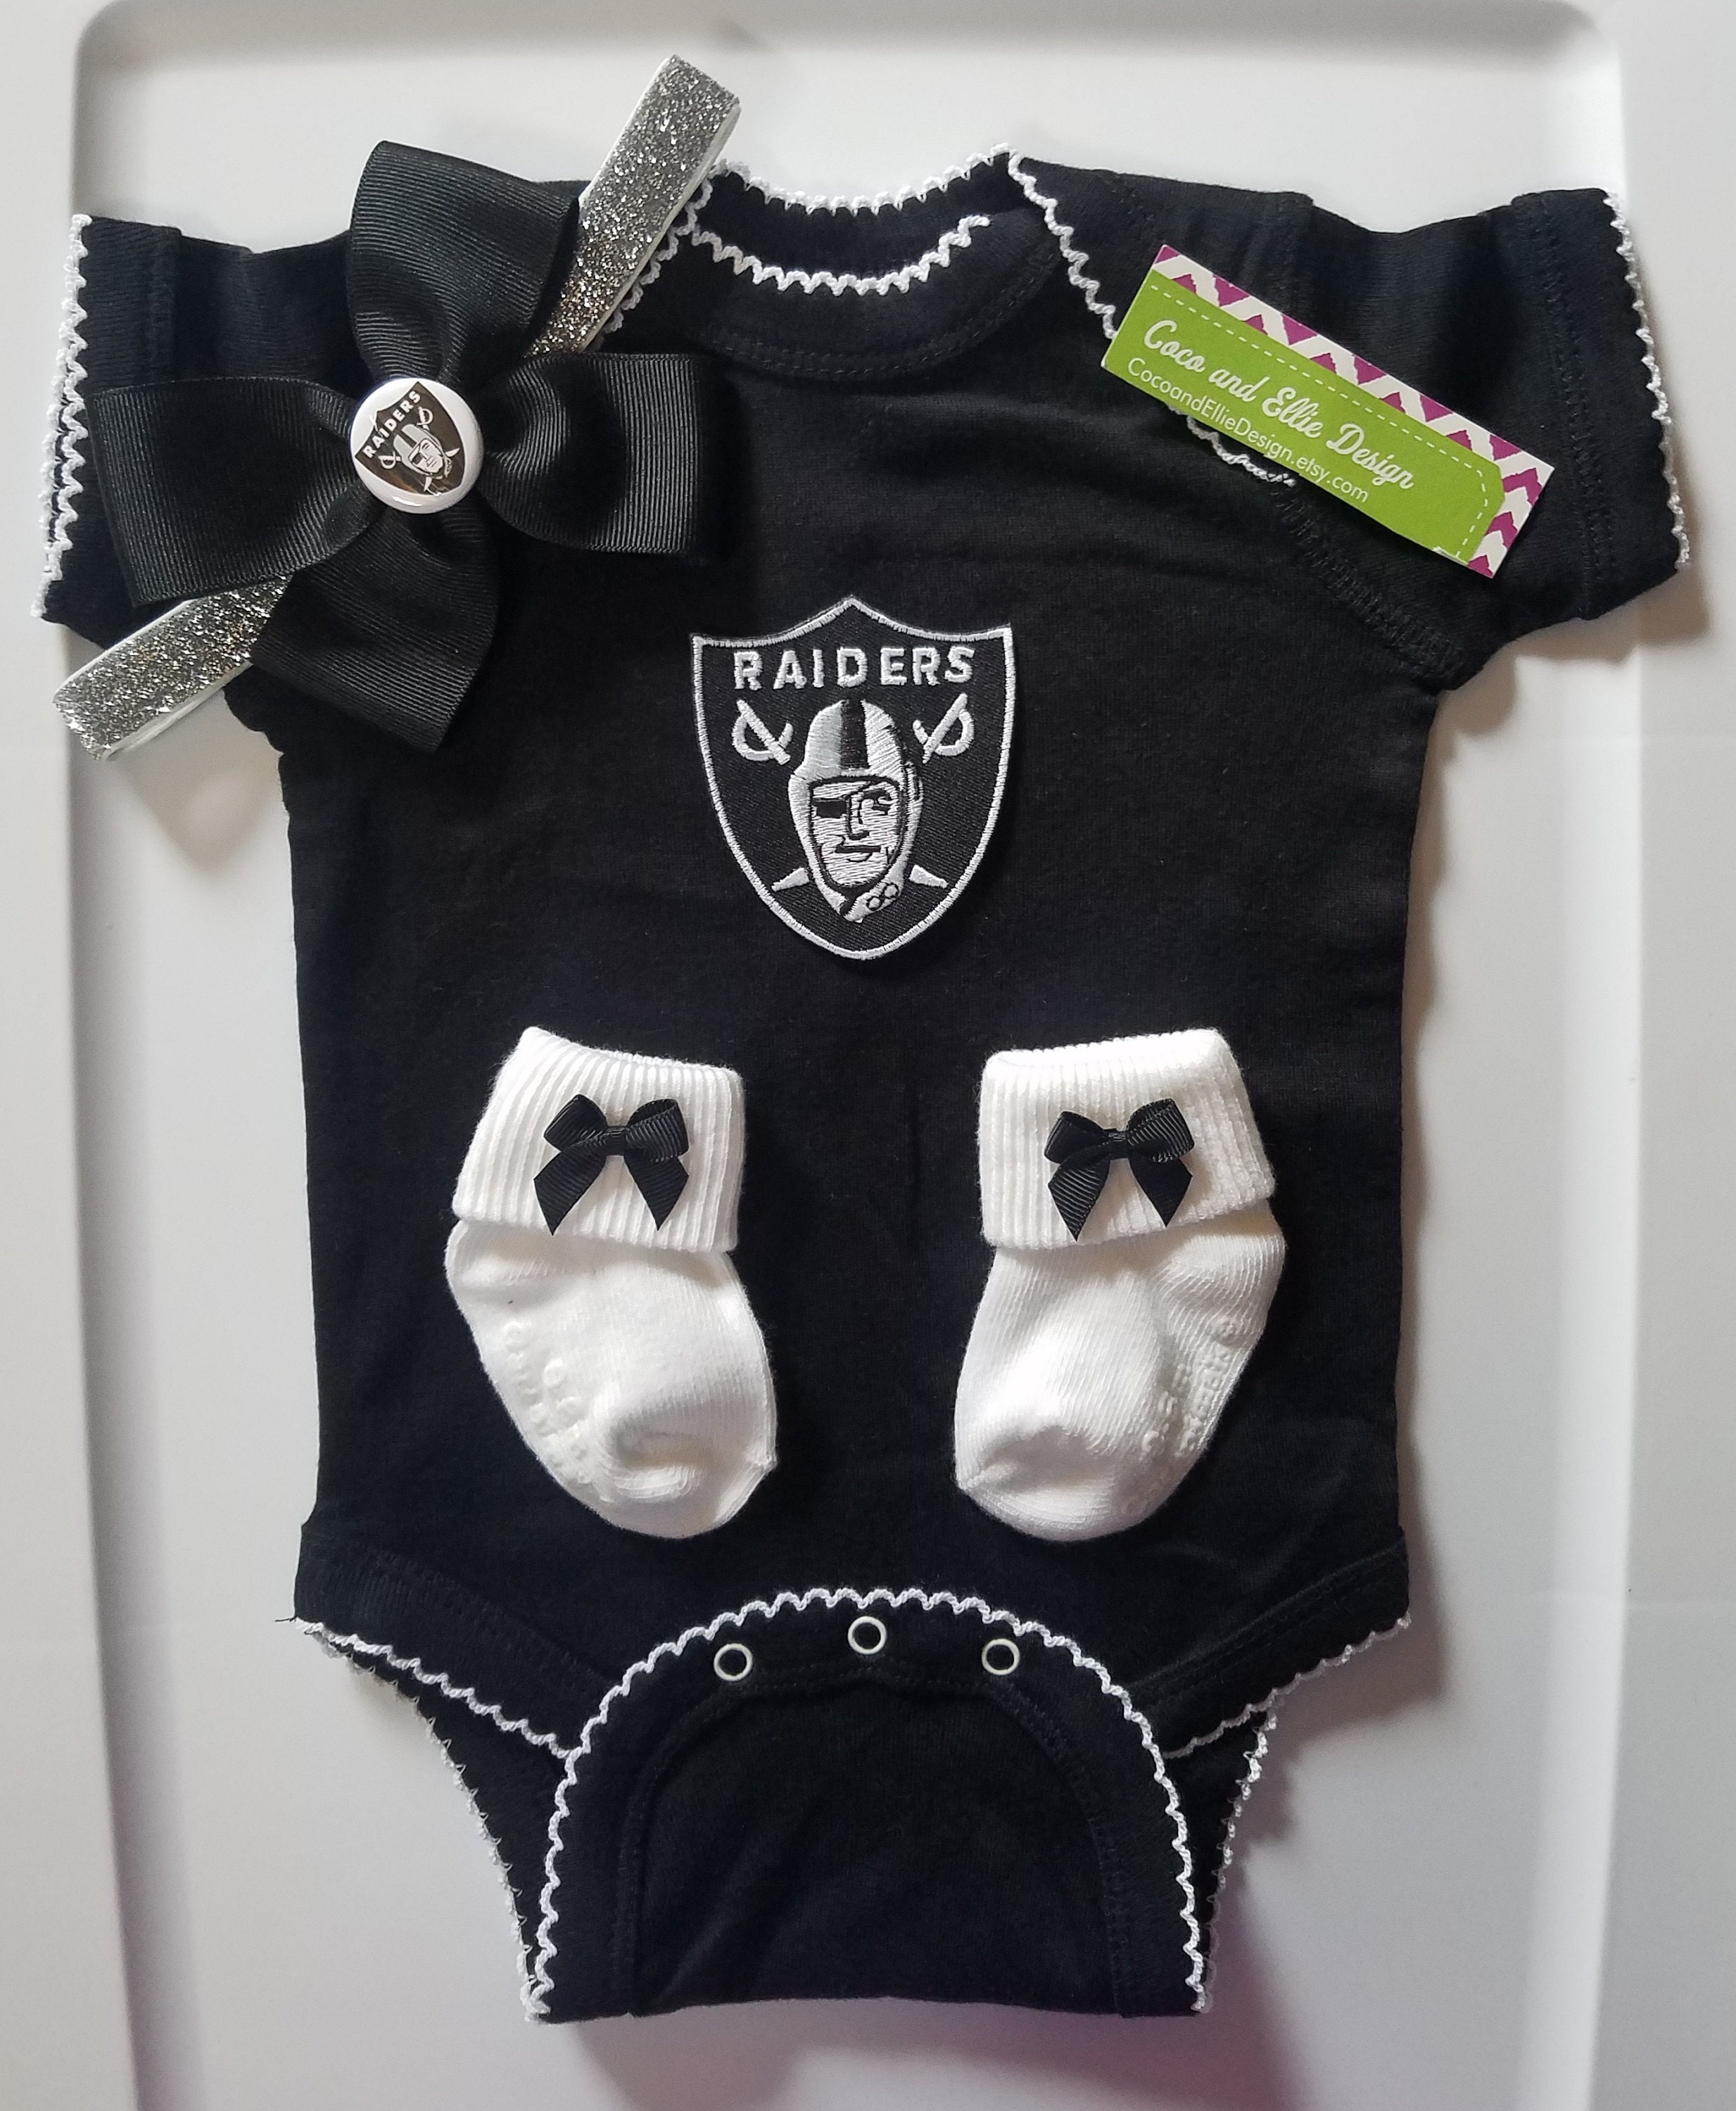 cb94091f9 Oakland Raiders baby girl outfit-Raiders baby girl   Etsy